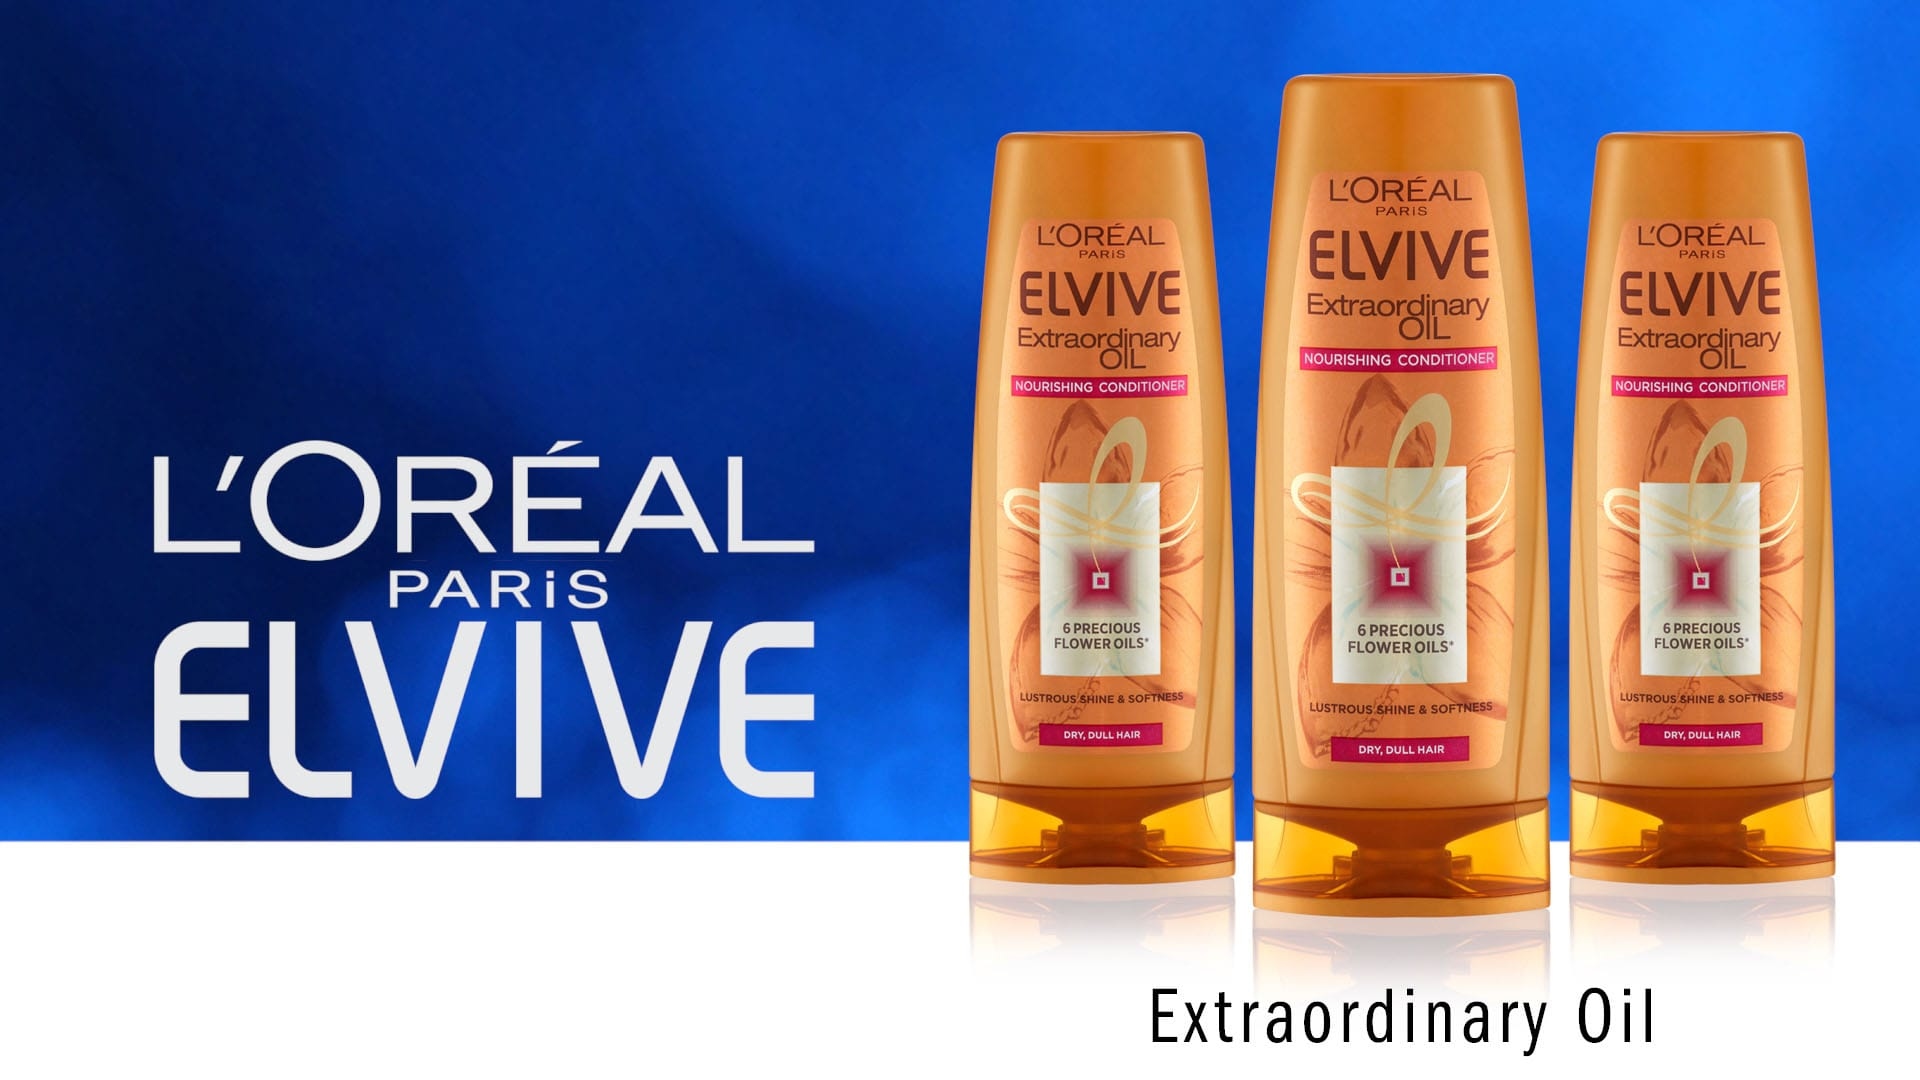 L'Oreal Elvive conditioner product photograph by Bernard Bleach